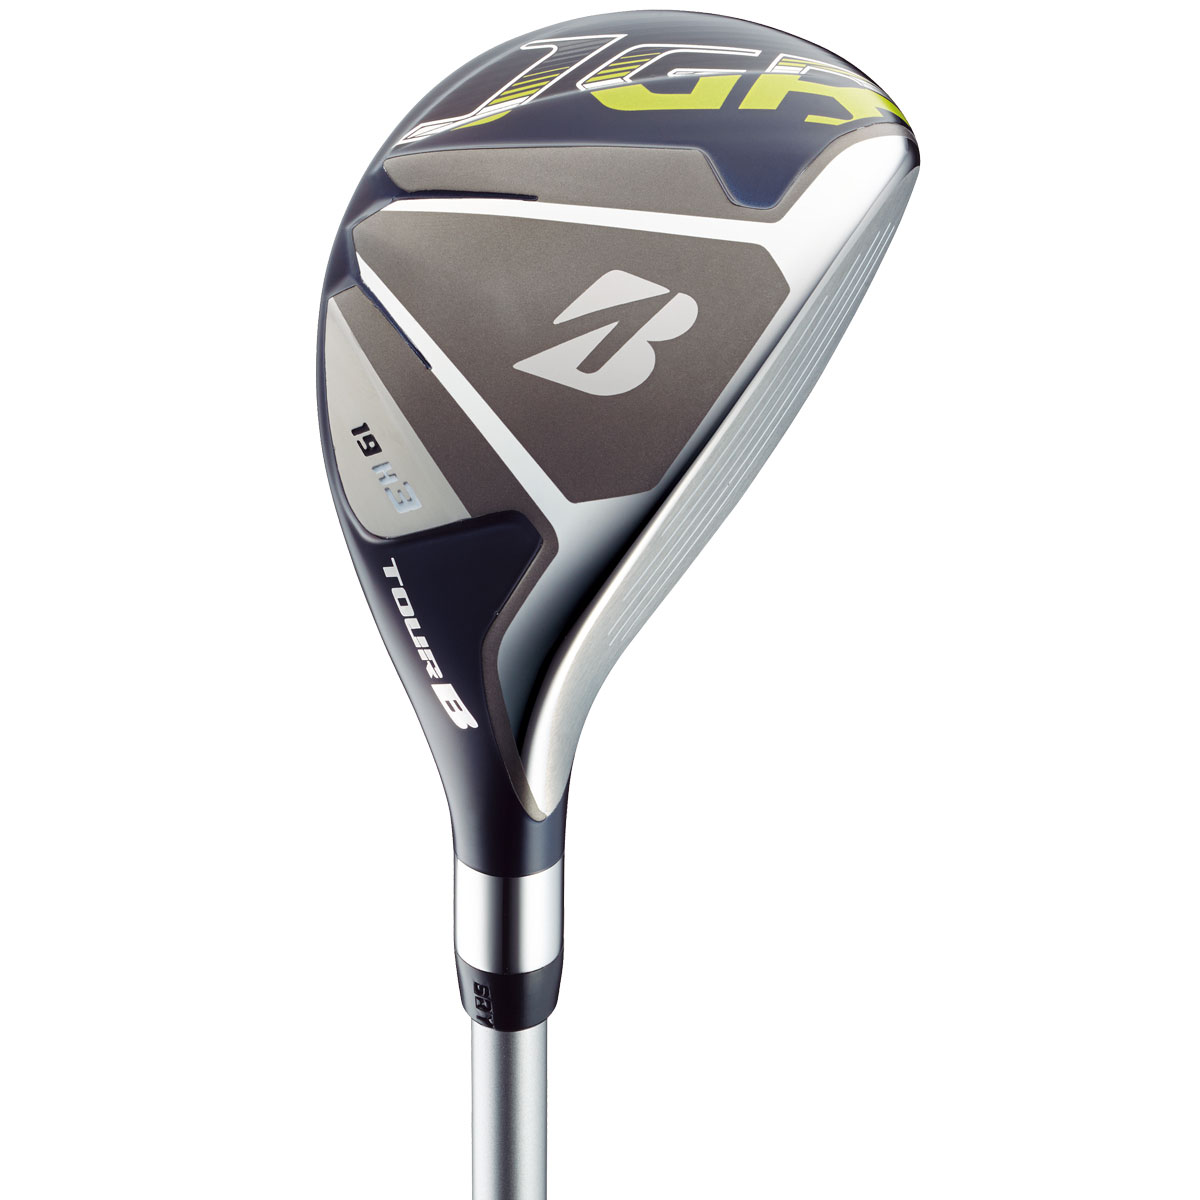 TOUR B JGR HYユーティリティ Air Speeder G for Utility